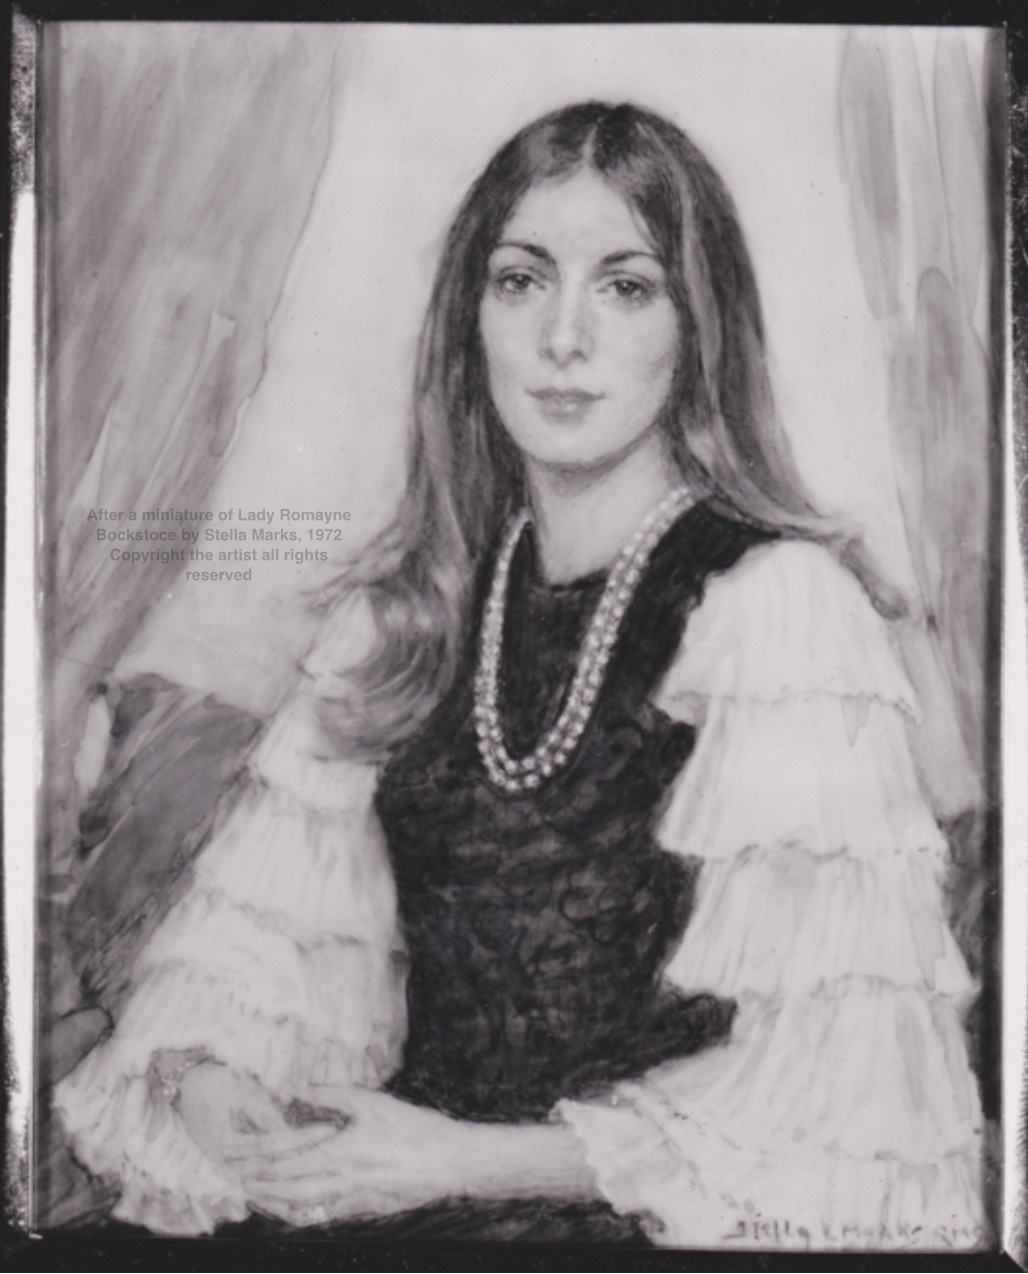 After a miniature of Lady Romayne Bockstoce by Stella Marks, 1972 Copyright Stella Marks' Estate all rights reserved